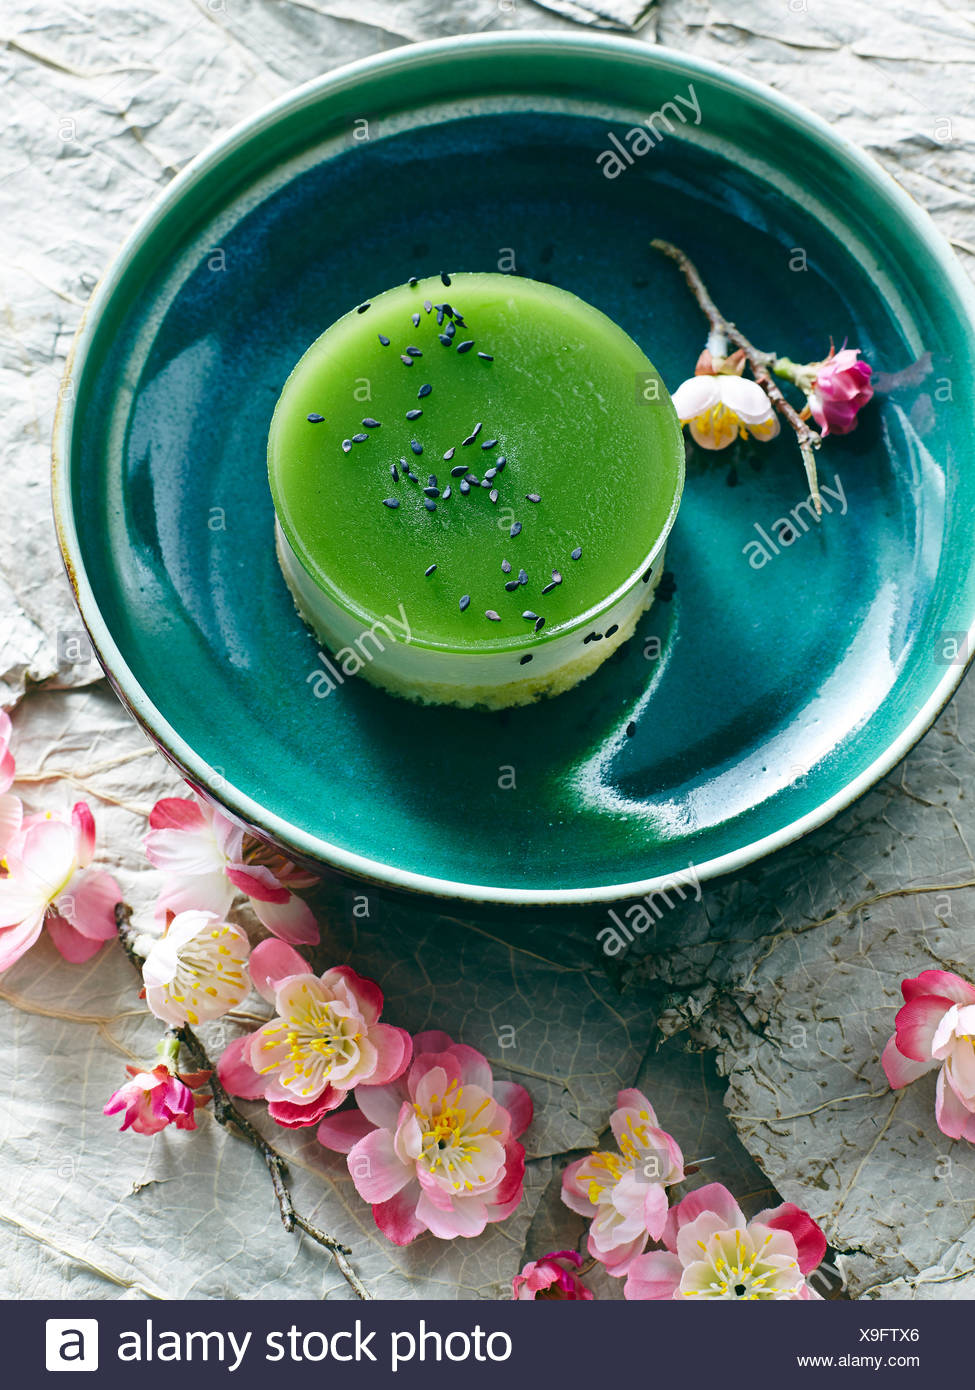 Still life with bowl of Japanese green tea cheesecake - Stock Image